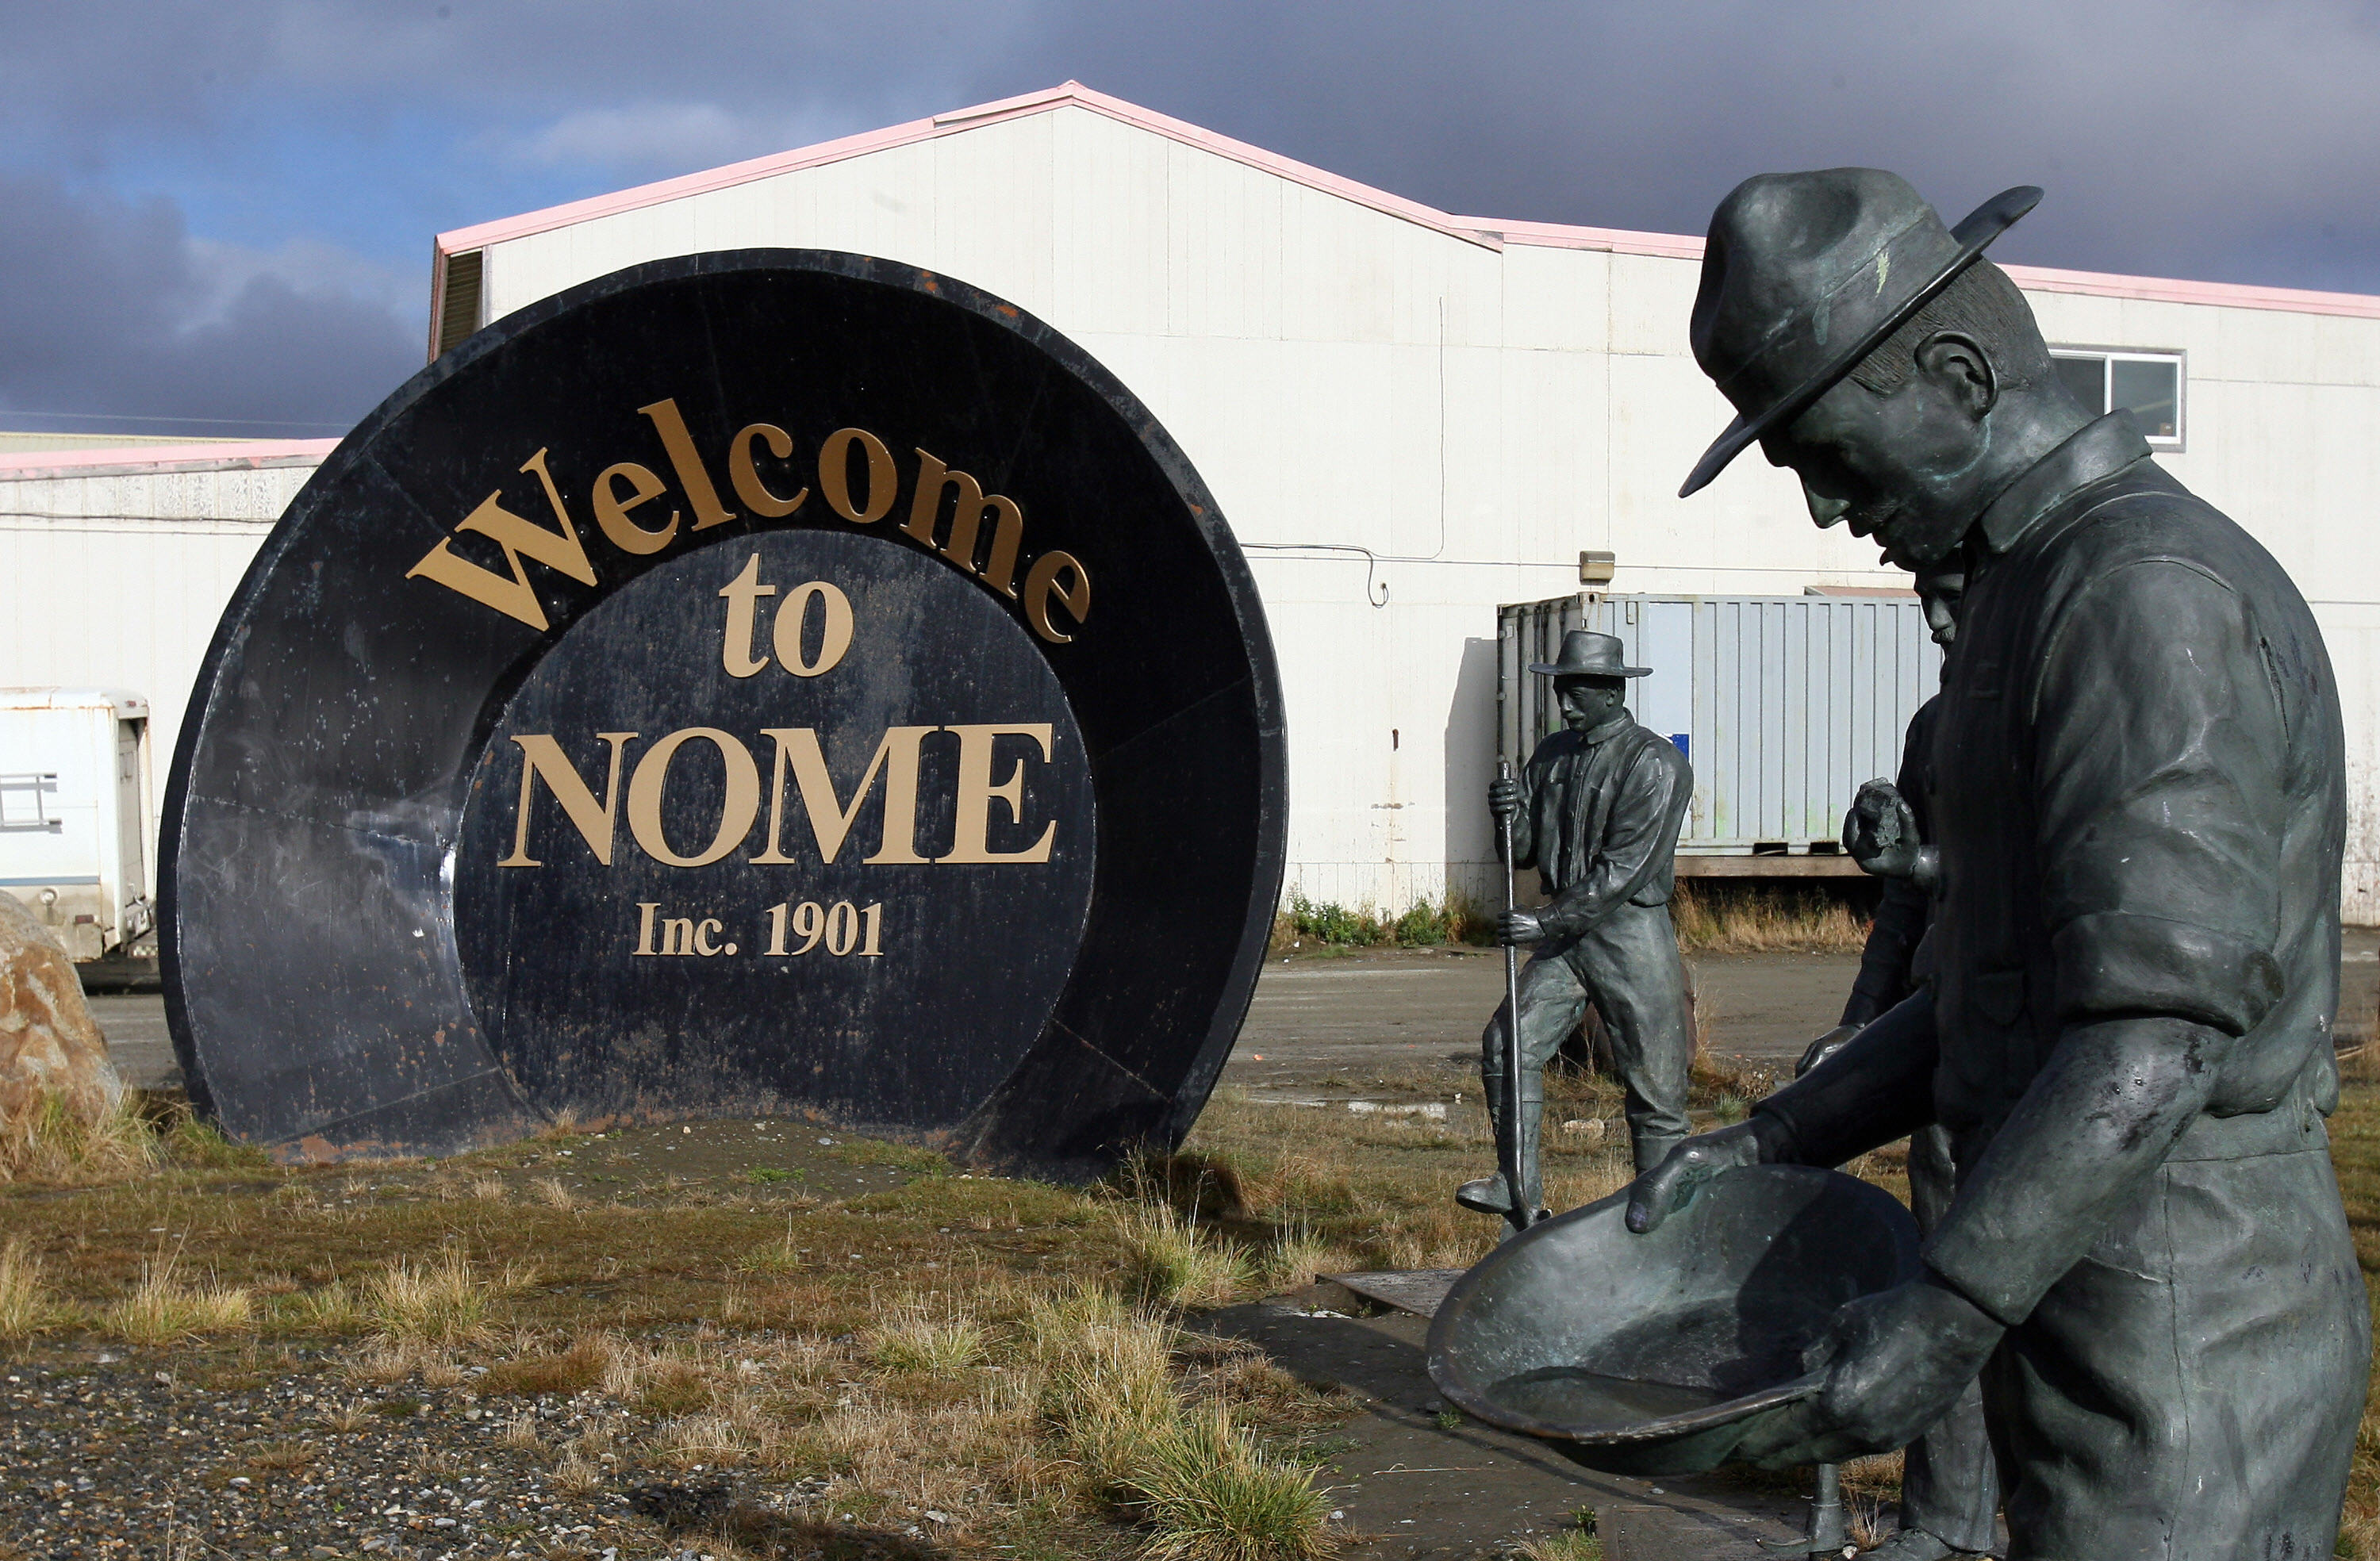 Nome, UNITED STATES: A giant gold pan welcomes visitors to Nome, Alaska, 29 September 2006. The discovery of gold by Norwegian Jafet Lindeberg and Swedes Erik Lindblom and John Brynteson in 1898 in nearby Anvil Creek, led to the founding of Anvil City, later renamed Nome. The city, 200 miles (321kms) from the Russian east coast and 560 miles (901kms) northwest of Anchorage, also claims the finish line of the Iditarod Trail annual dog sled race. AFP PHOTO/GABRIEL BOUYS (Photo credit should read GABRIEL BOUYS/AFP/Getty Images)